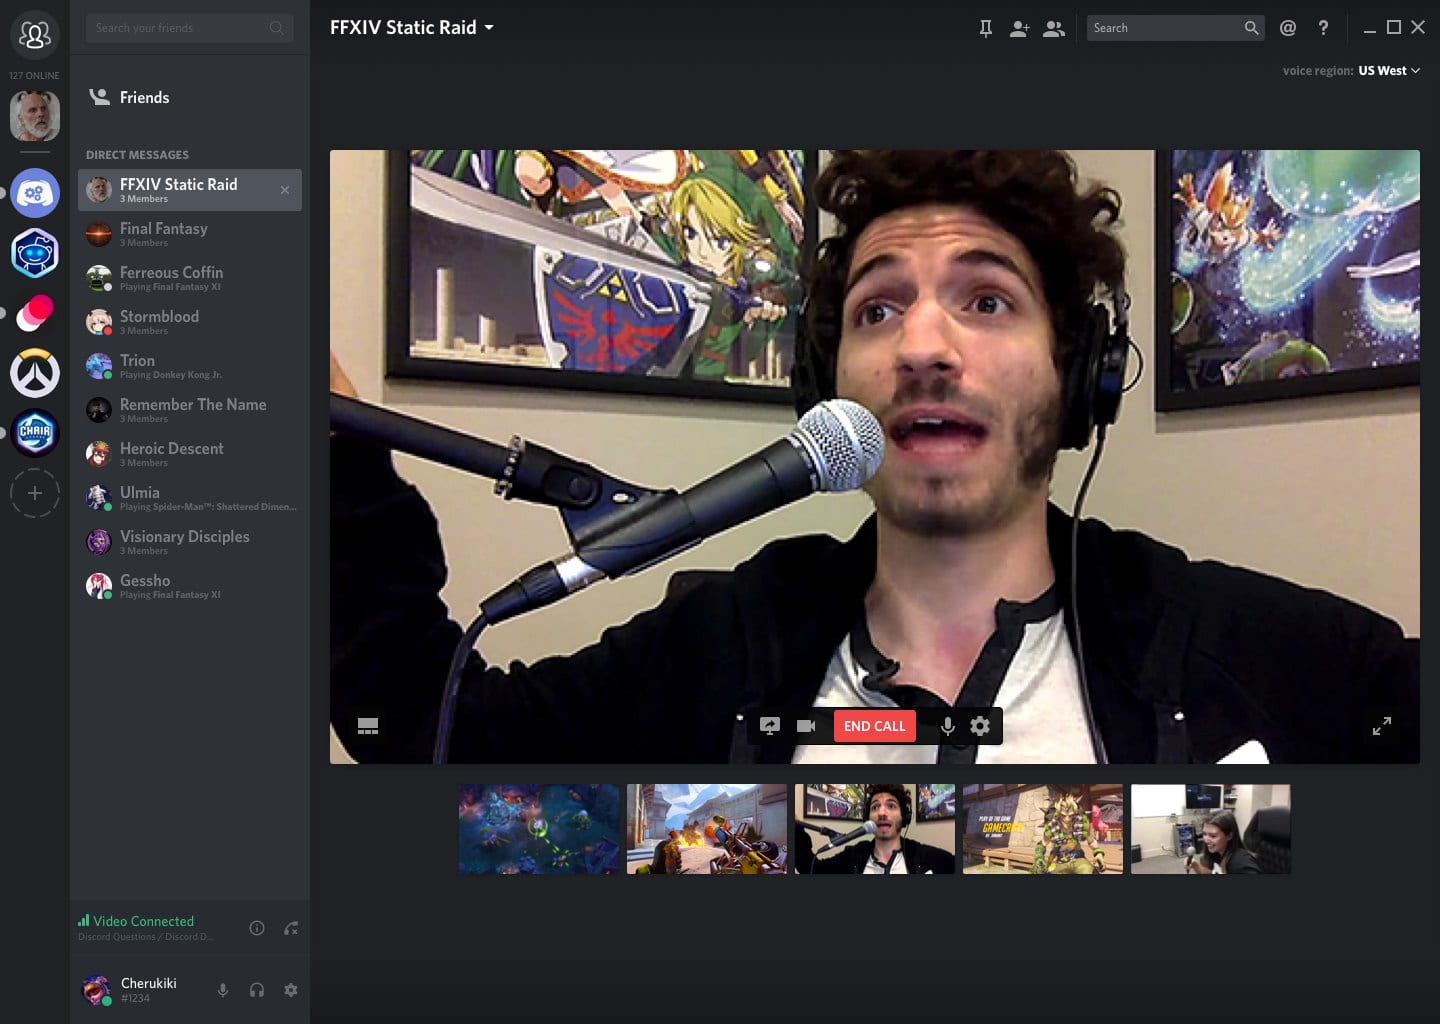 Discord makes video chat and screen sharing available to all